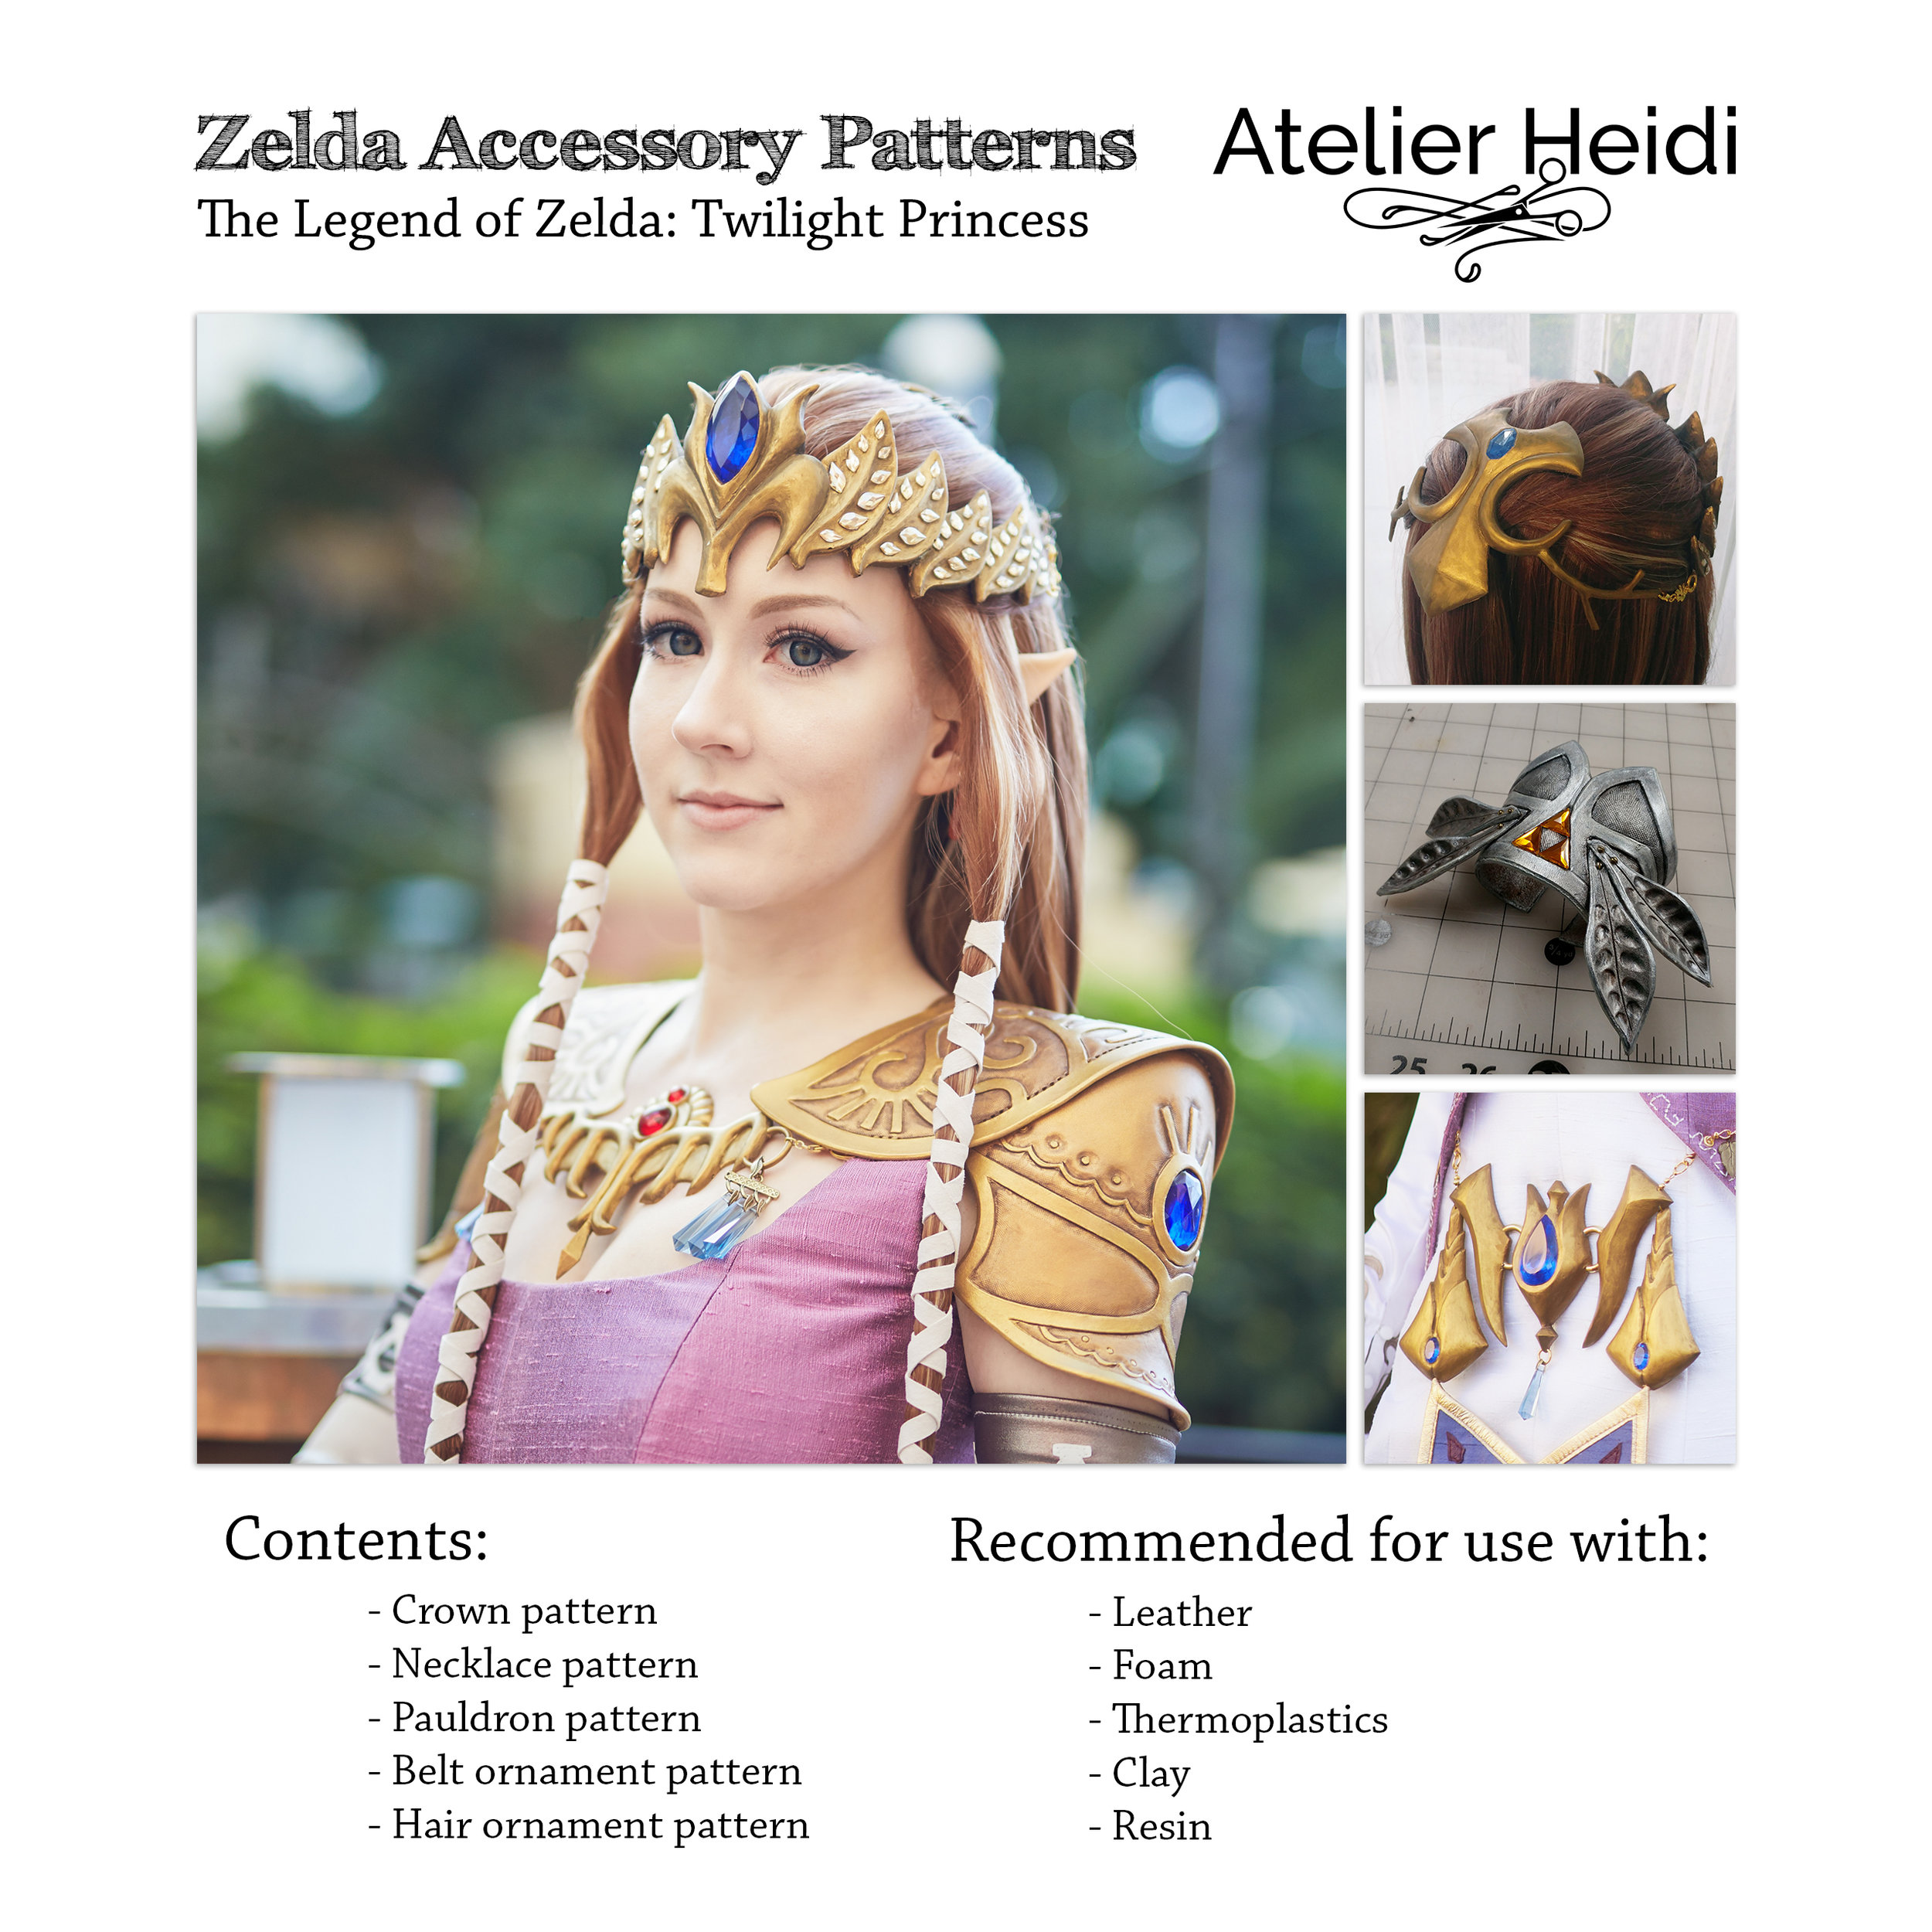 Accessory Patterns Cover-sq.jpg